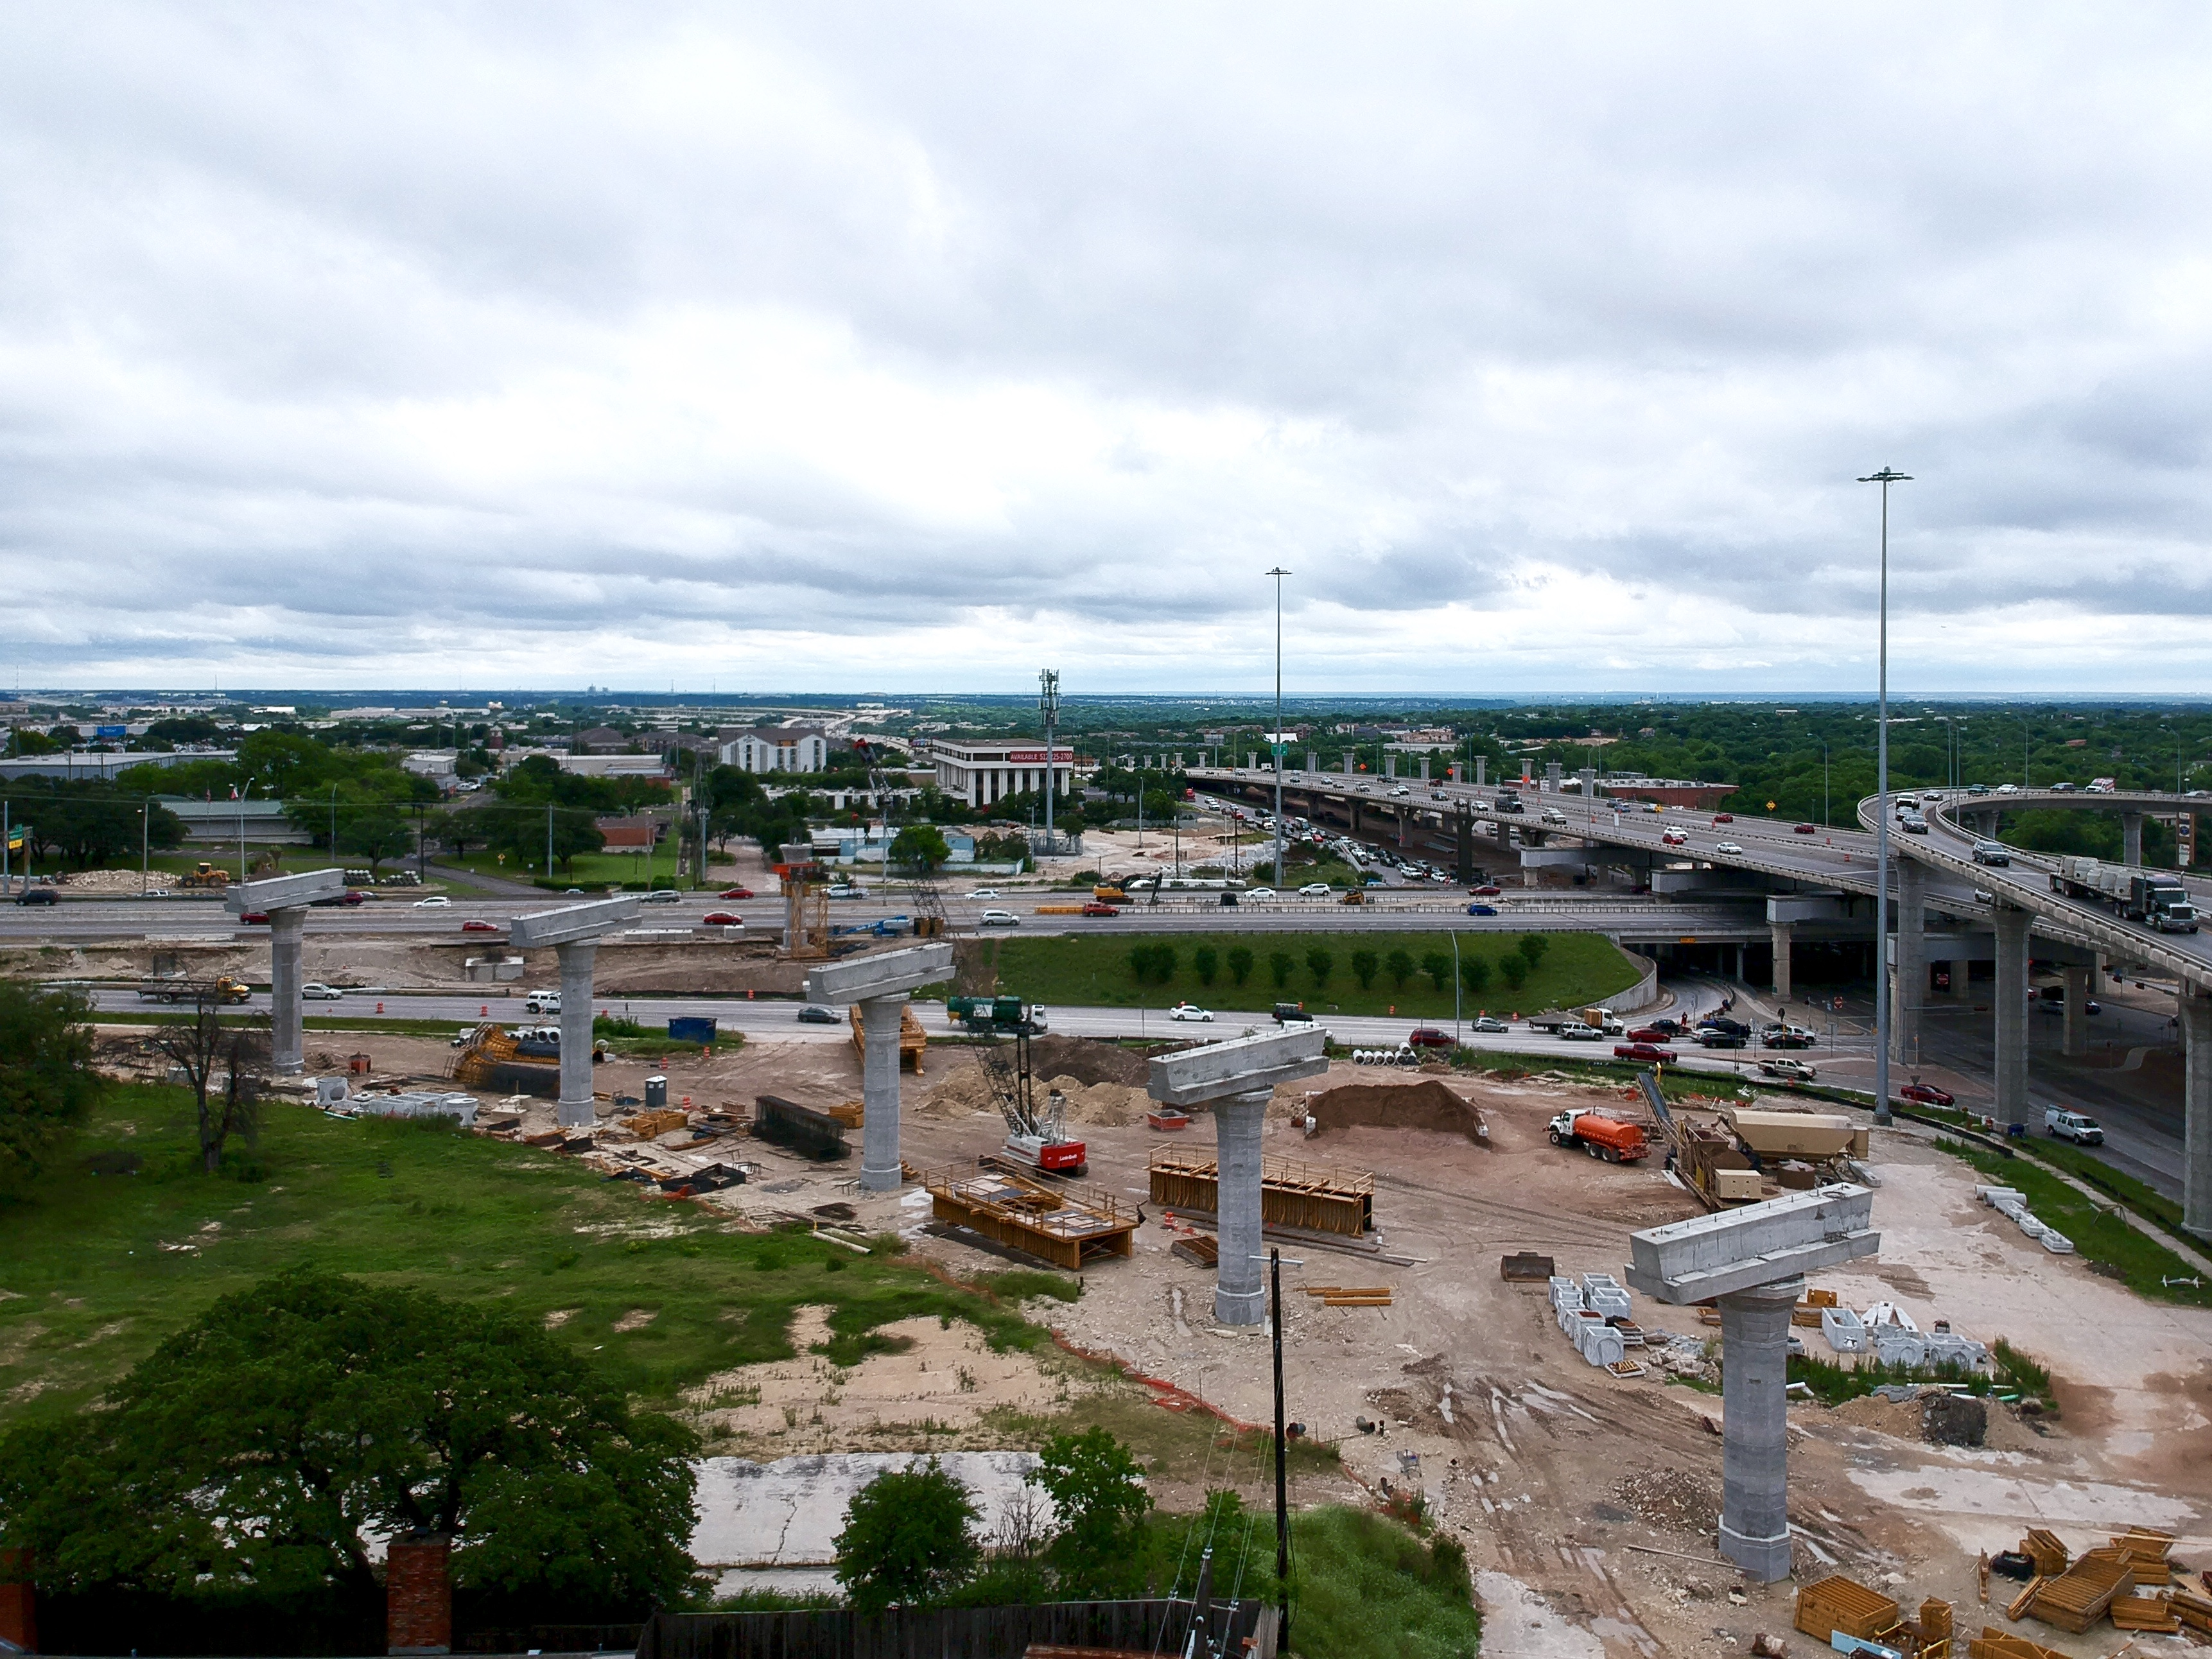 Southbound I-35 to US 183 flyover progress - May 2019